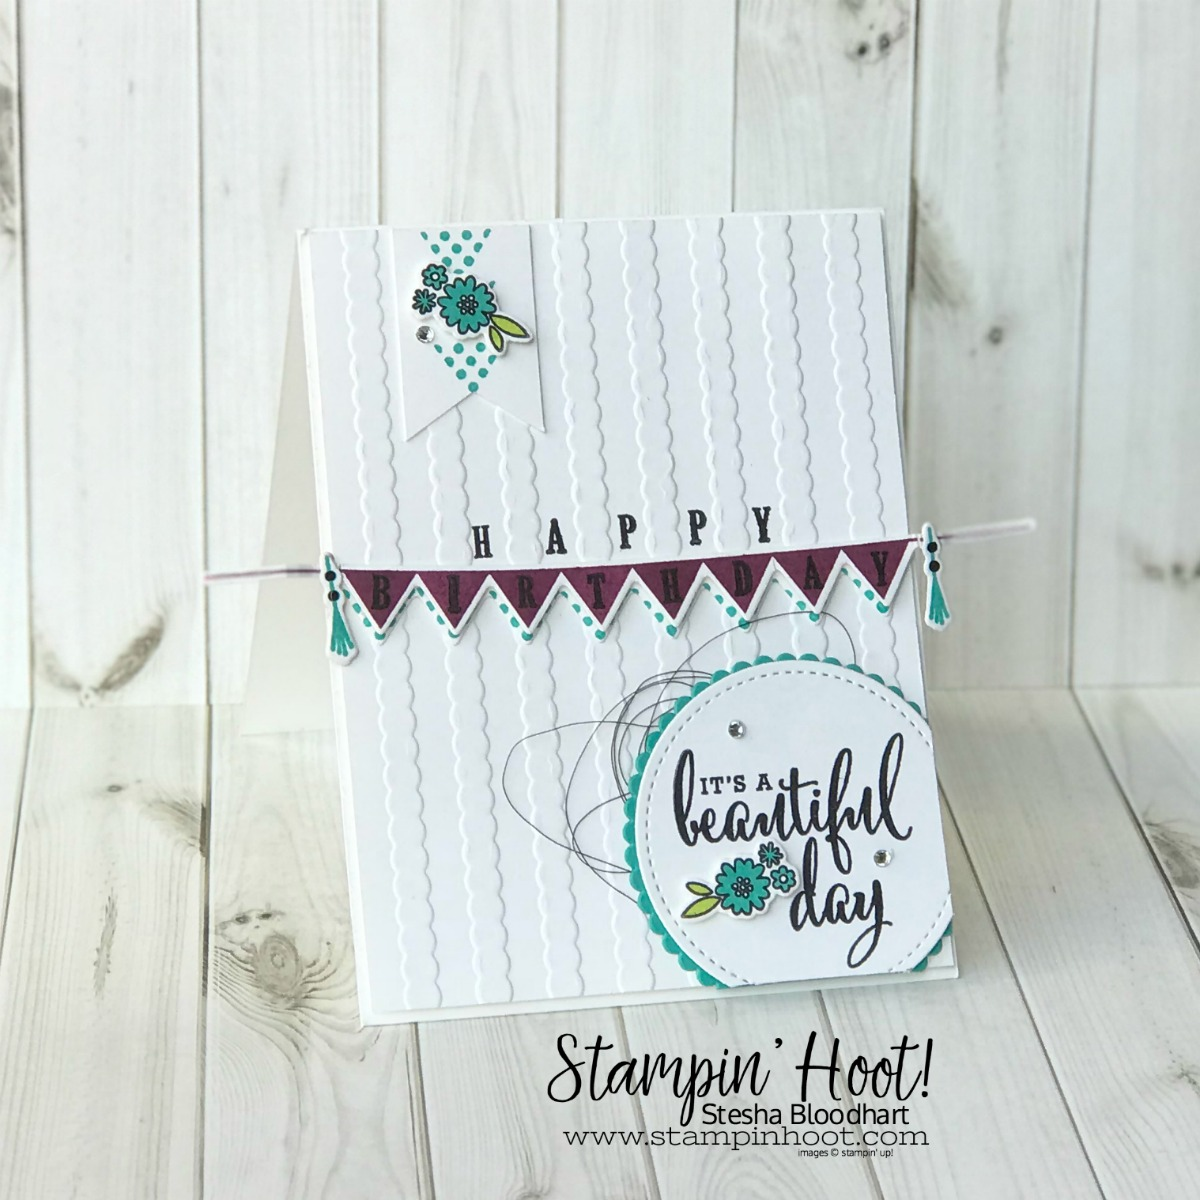 Pick a Pennant Bundle and Love What You Do Stamp Set by Stampin' Up! Happy Birthday Card created by Stesha Bloodhart, Stampin' Hoot! for #OnStage2018 Milwaukee Display Board Samples #stampinhoot #steshabloodhart